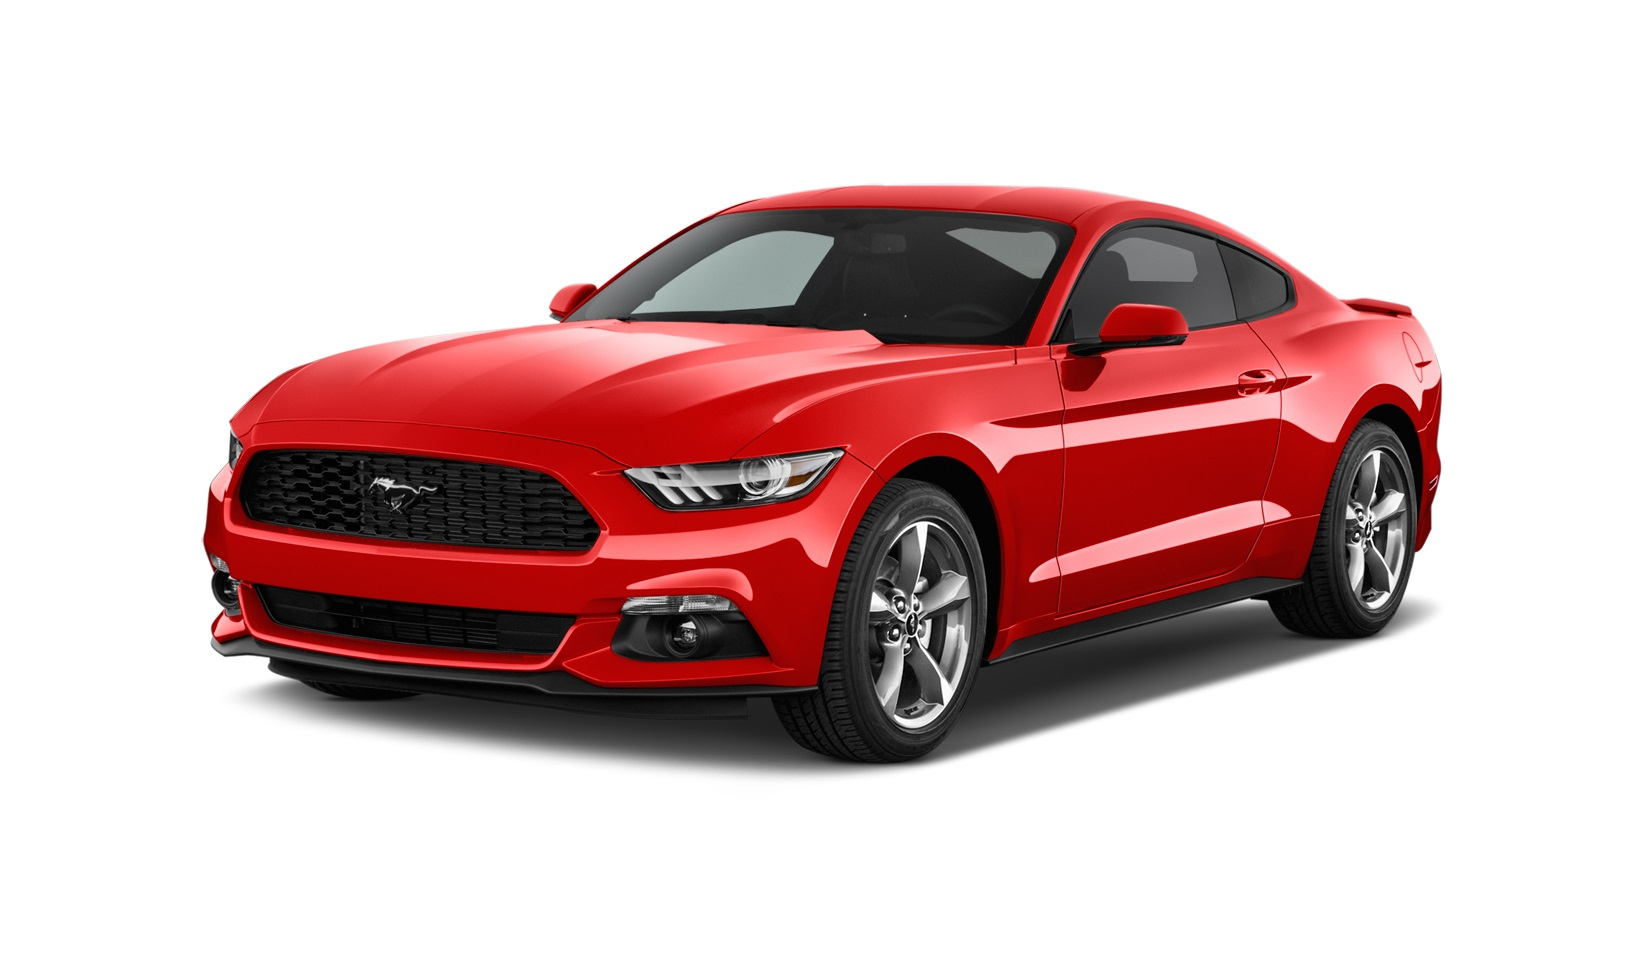 Ford Mustang Price In Uae